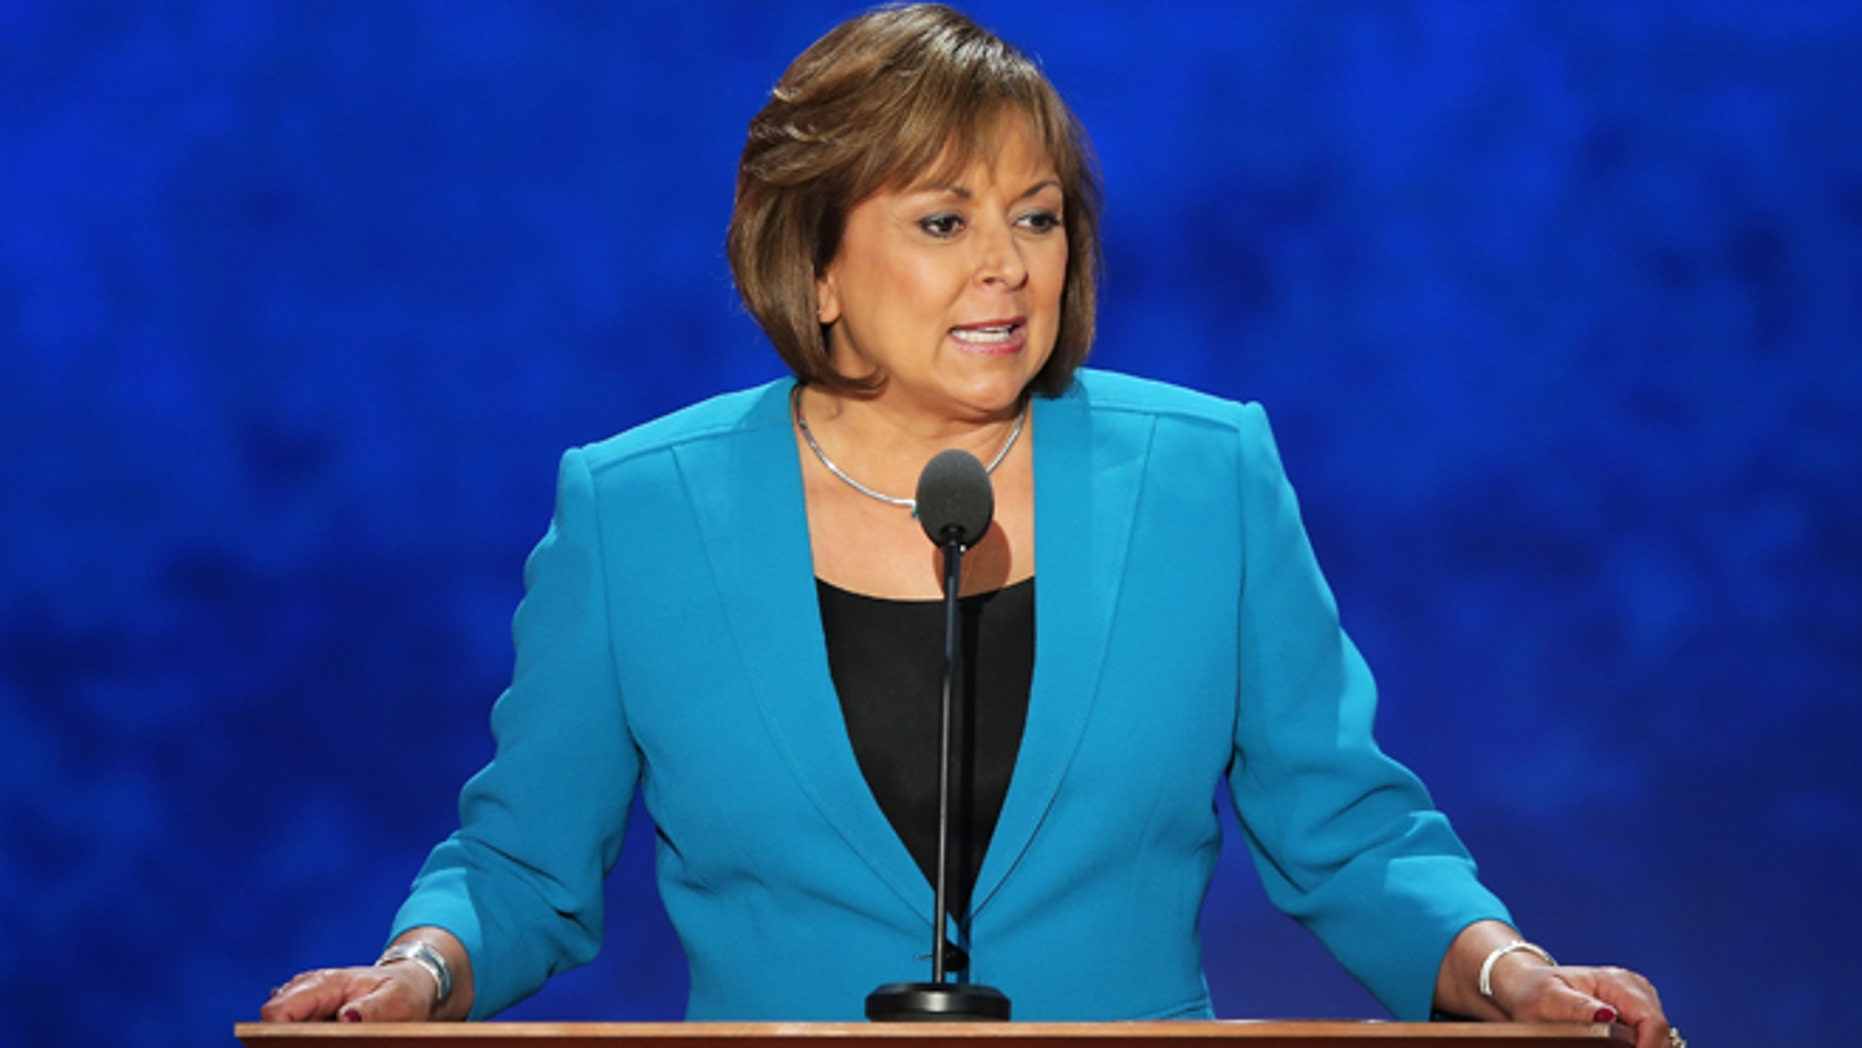 TAMPA, FL - AUGUST 29:  New Mexico Gov. Susana Martinez speaks during the third day of the Republican National Convention at the Tampa Bay Times Forum on August 29, 2012 in Tampa, Florida. Former Massachusetts Gov. Former Massachusetts Gov. Mitt Romney was nominated as the Republican presidential candidate during the RNC, which is scheduled to conclude August 30.  (Photo by Mark Wilson/Getty Images)